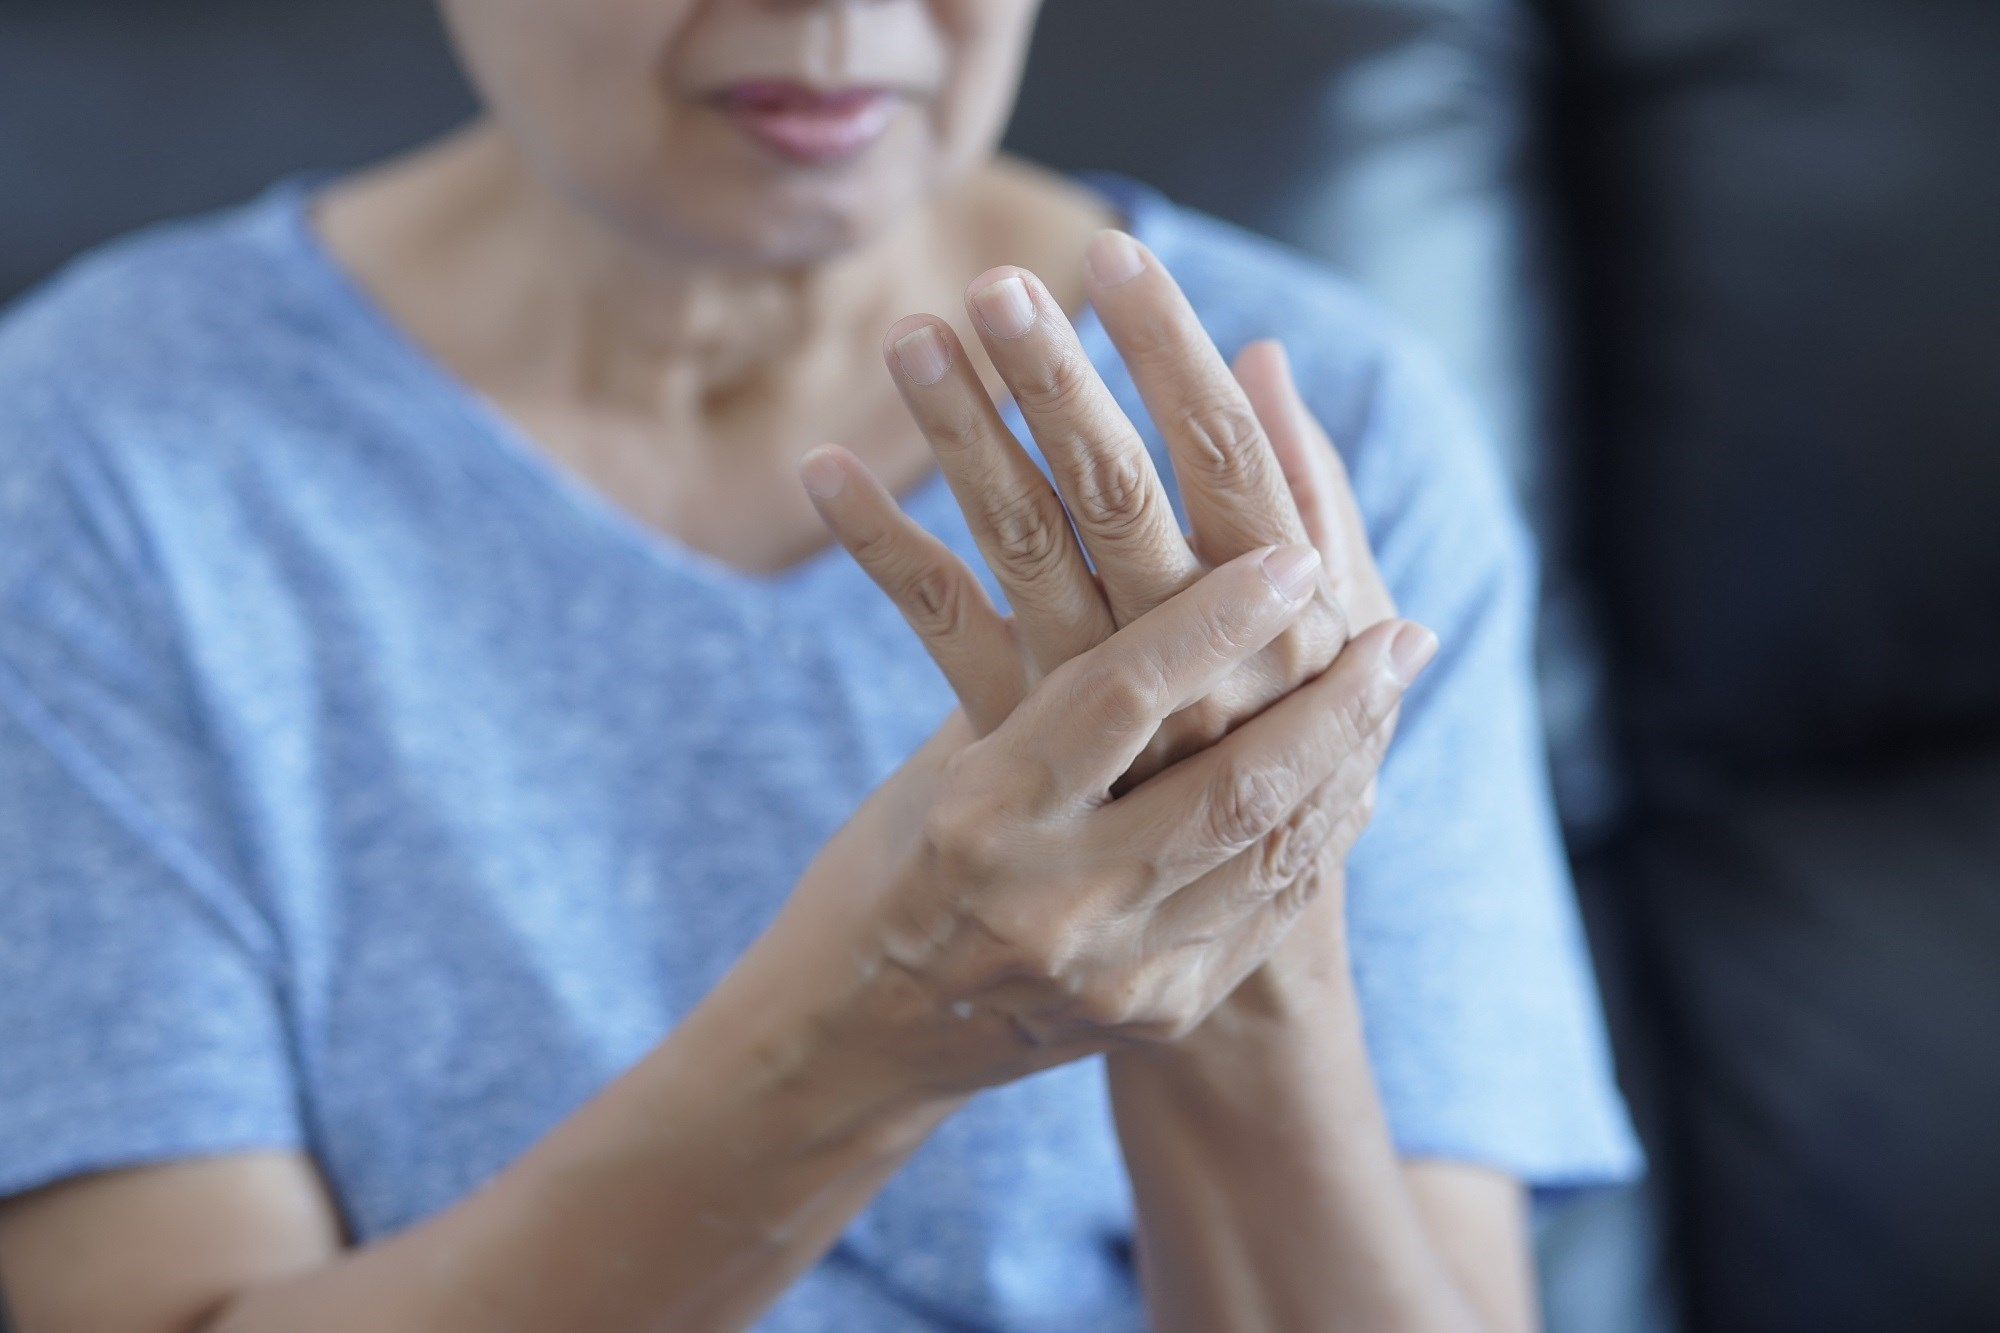 Diabetes Associated With Elevated Risk for Arthritis, Osteoporosis